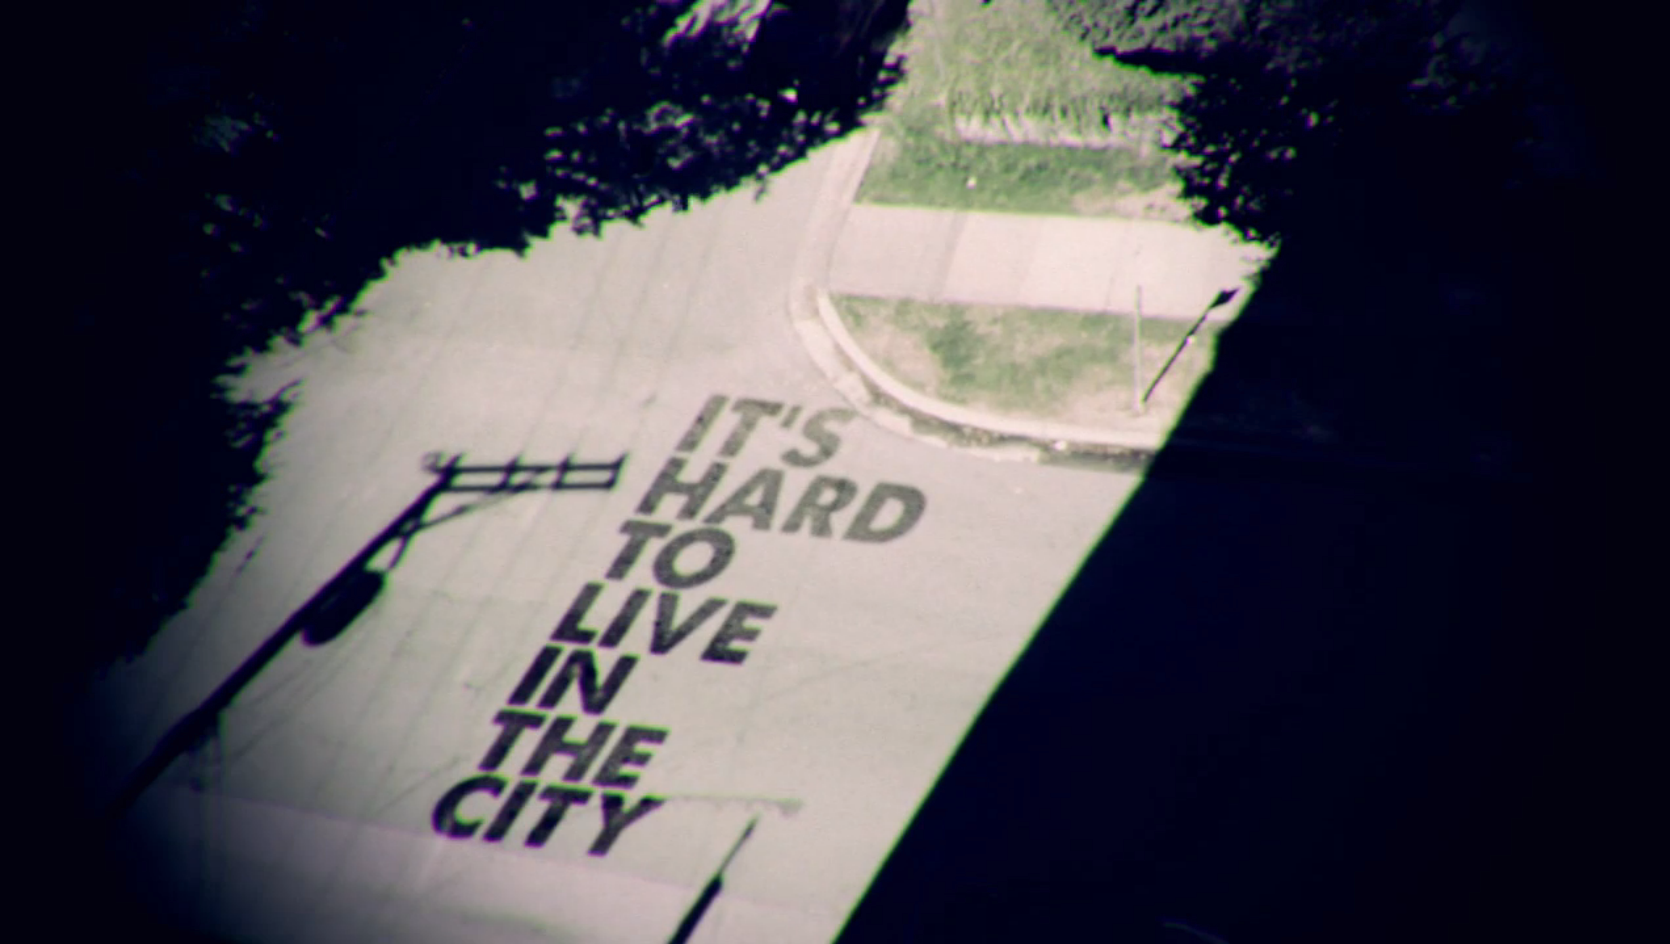 It's Hard to Live in the City — Narrative Short (4 mins)